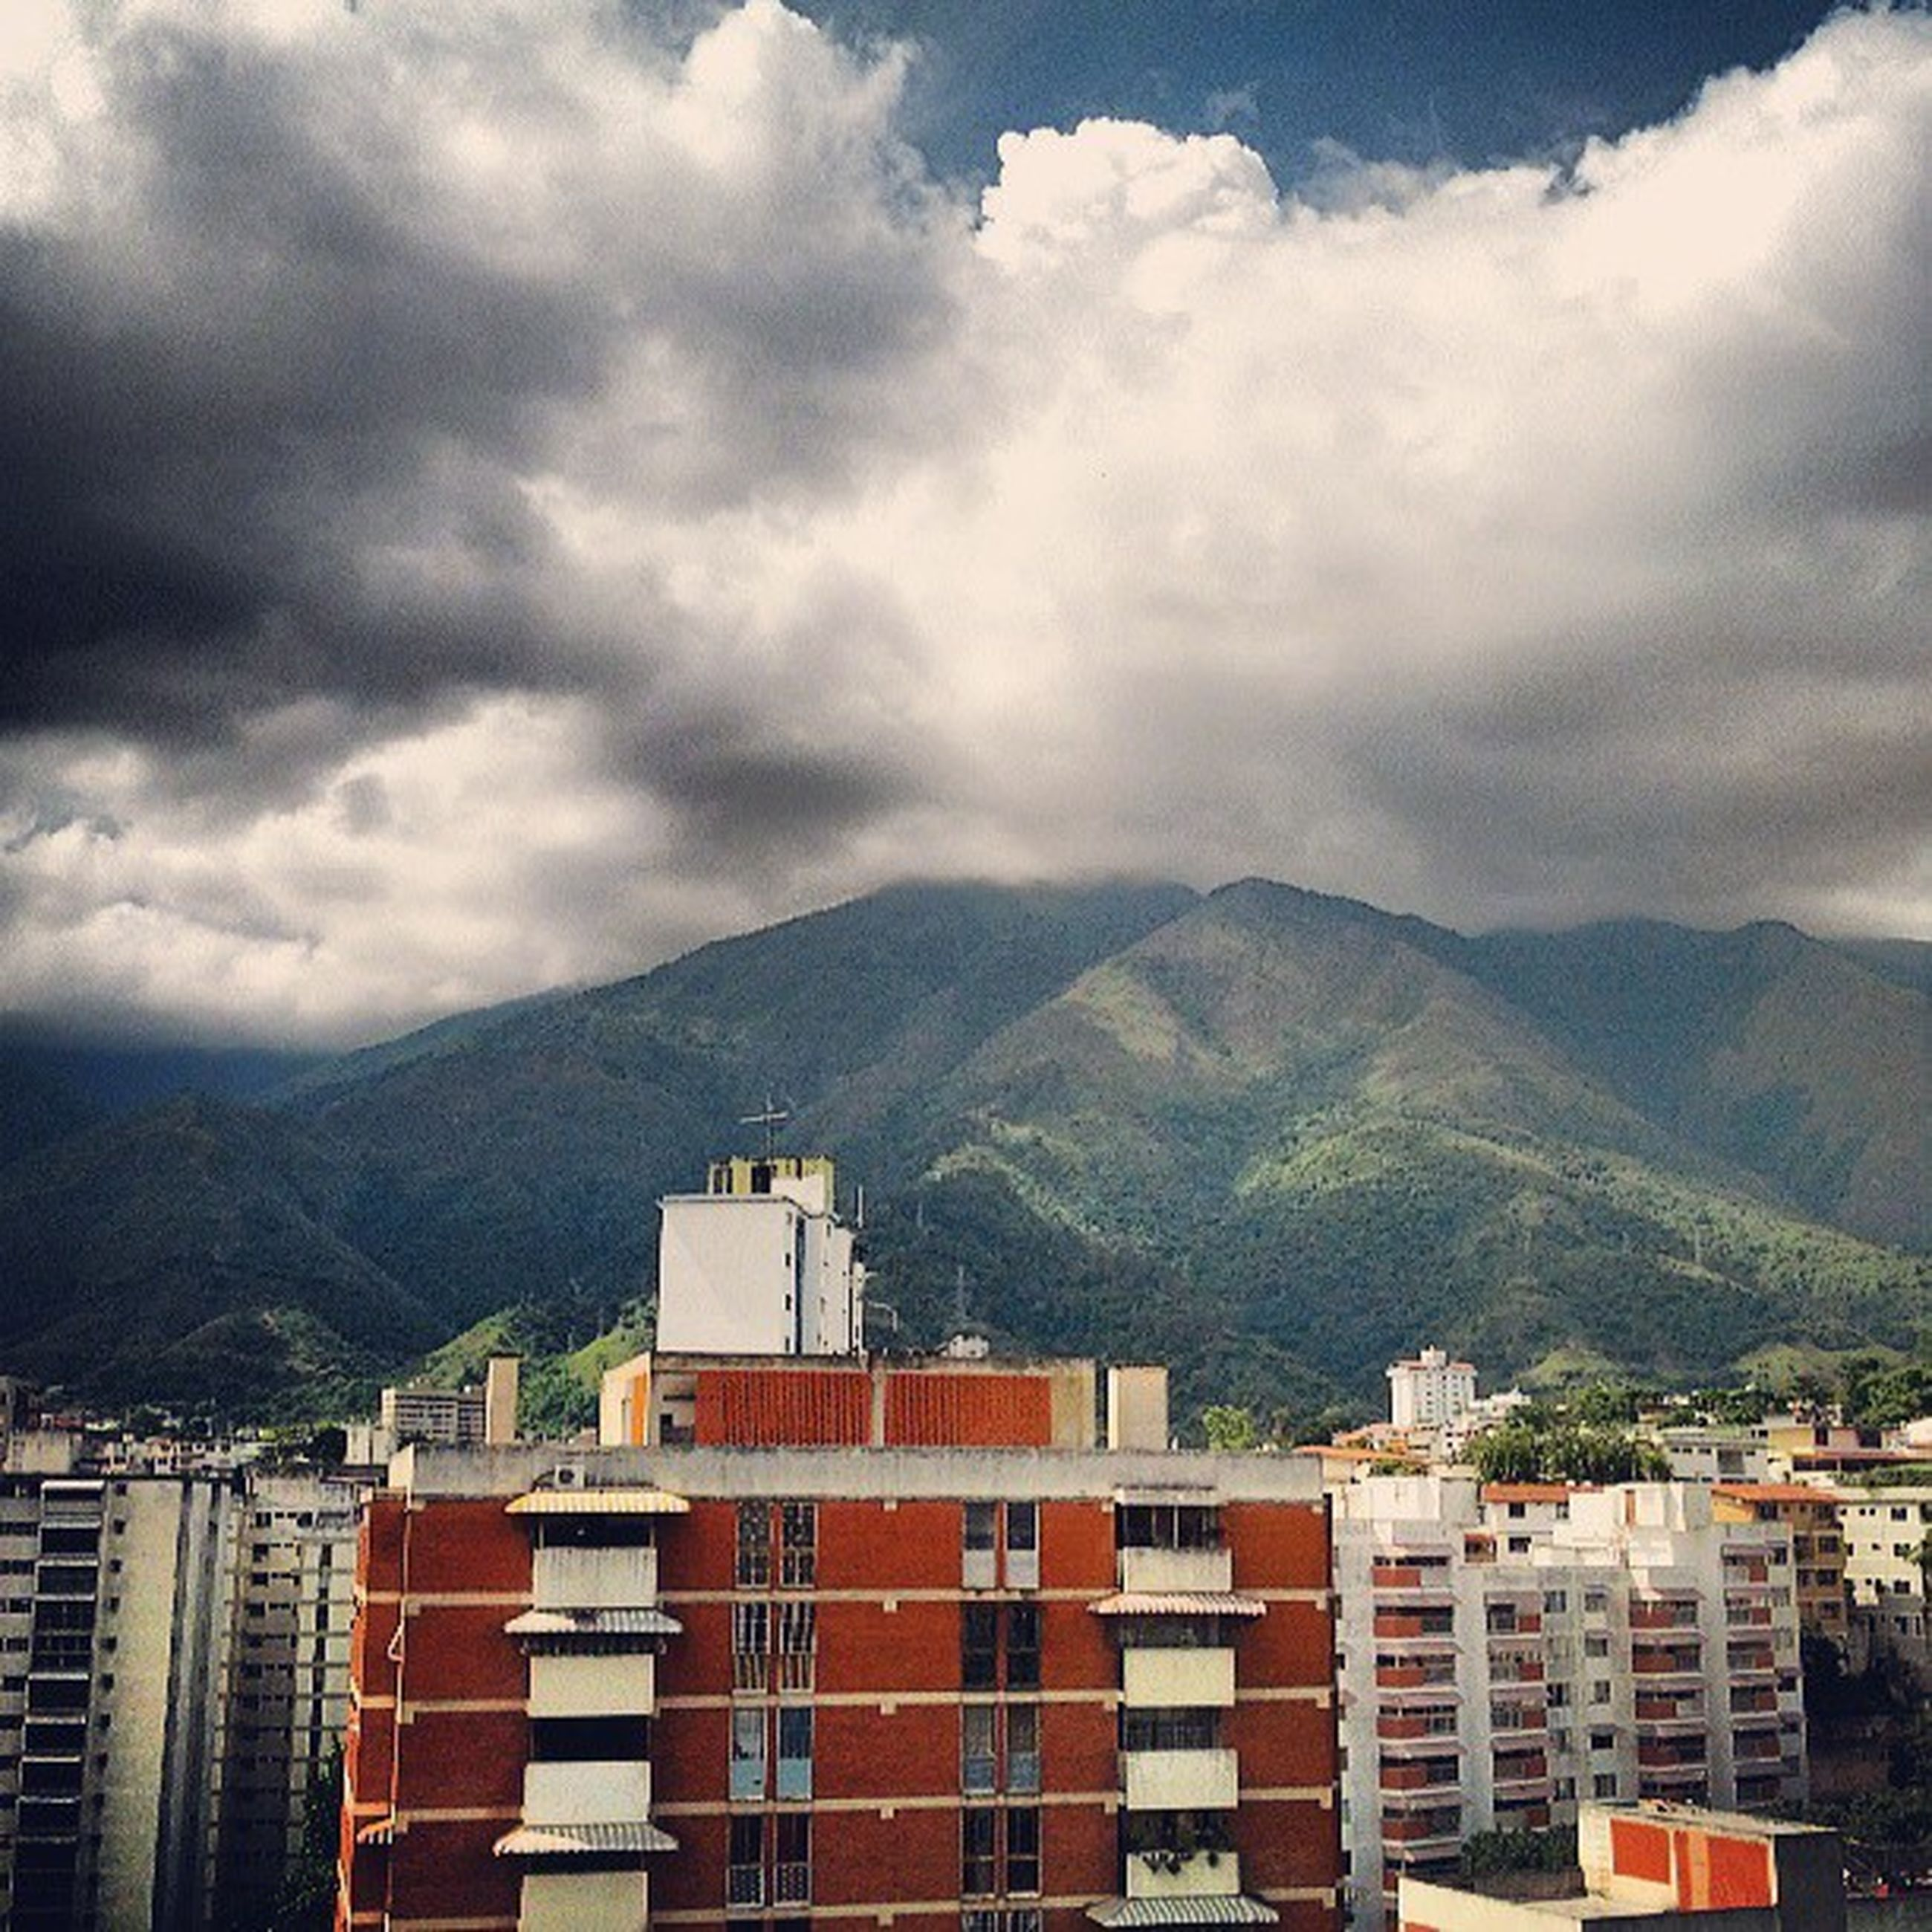 mountain, mountain range, building exterior, sky, architecture, built structure, cloud - sky, cloudy, cloud, house, scenics, residential structure, nature, day, residential building, beauty in nature, weather, overcast, outdoors, no people